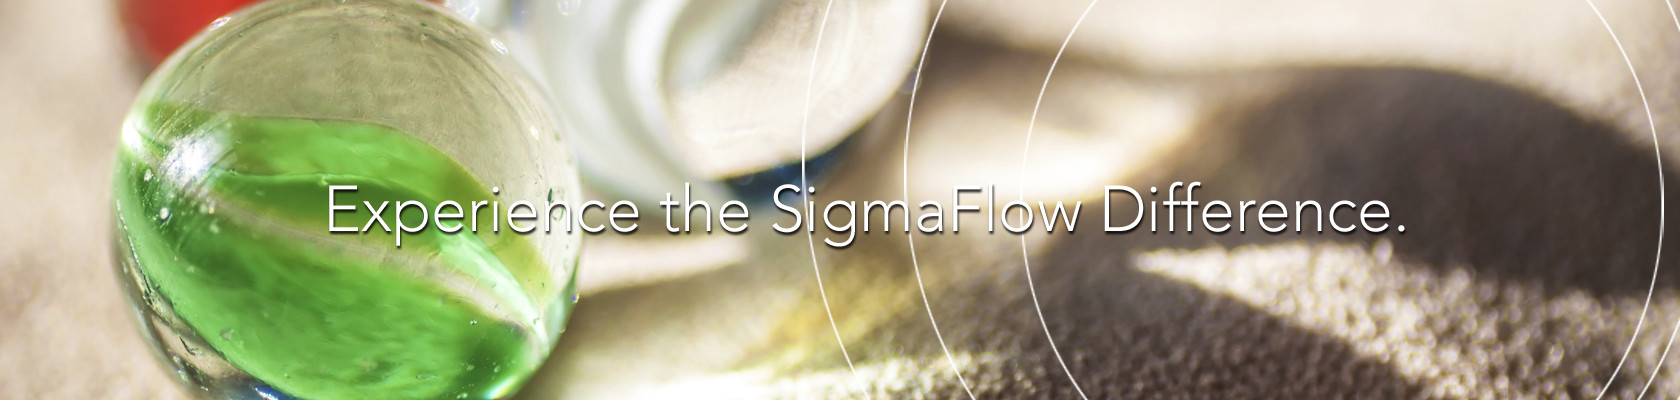 SigmaFlow Difference, Well Delivery, NERC Compliance